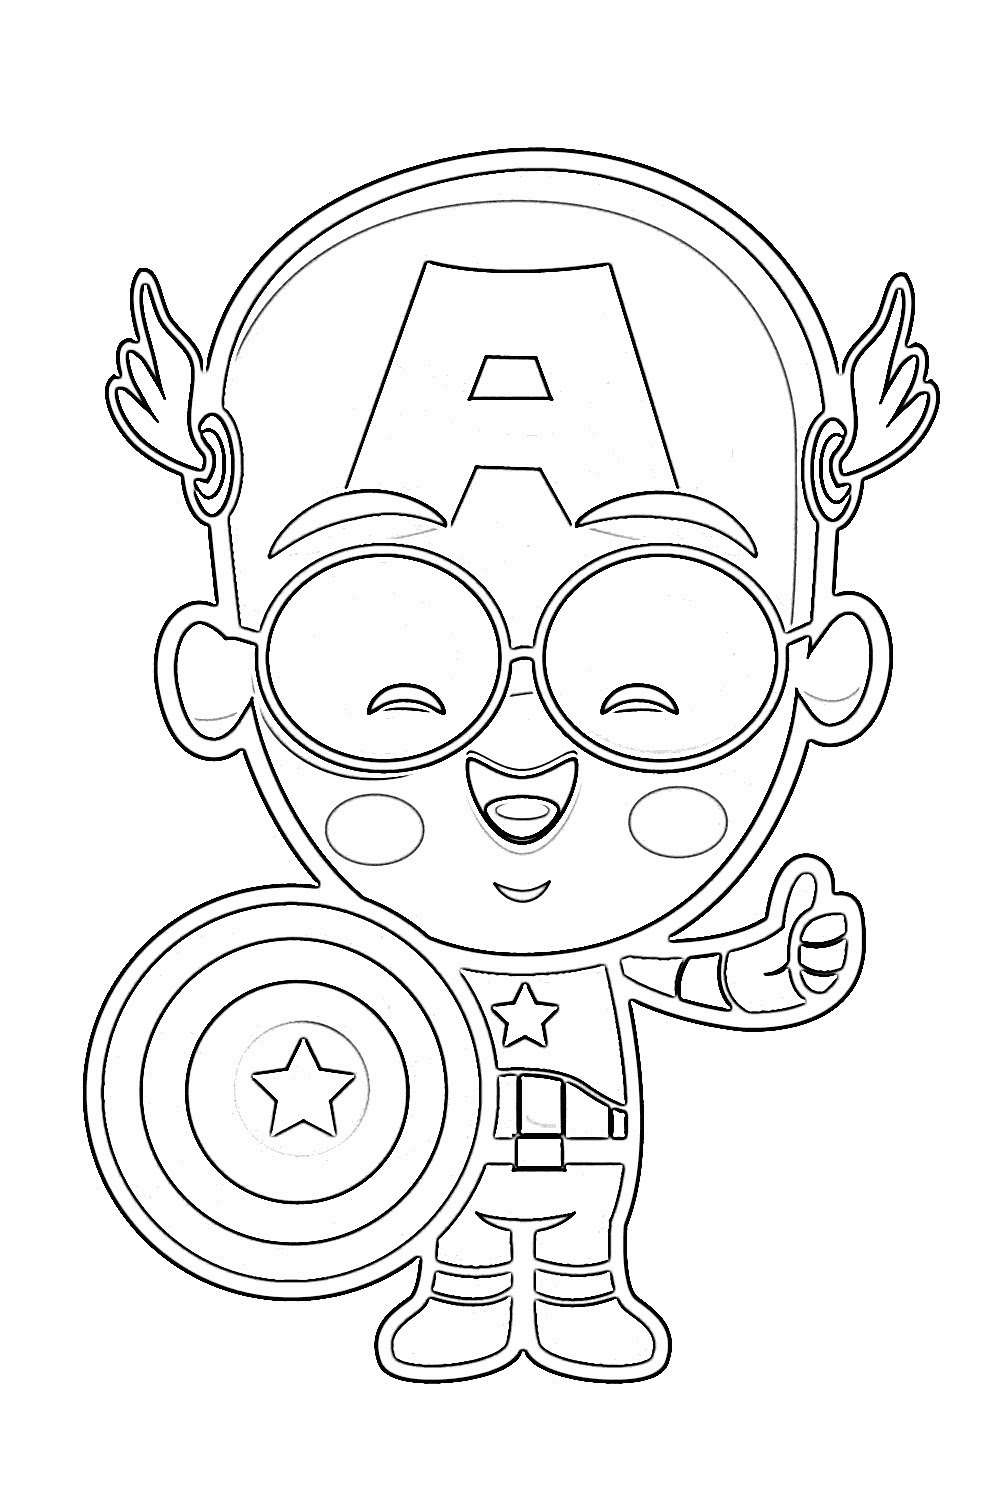 Craftoholic: Ultimate Avengers Coloring Pages